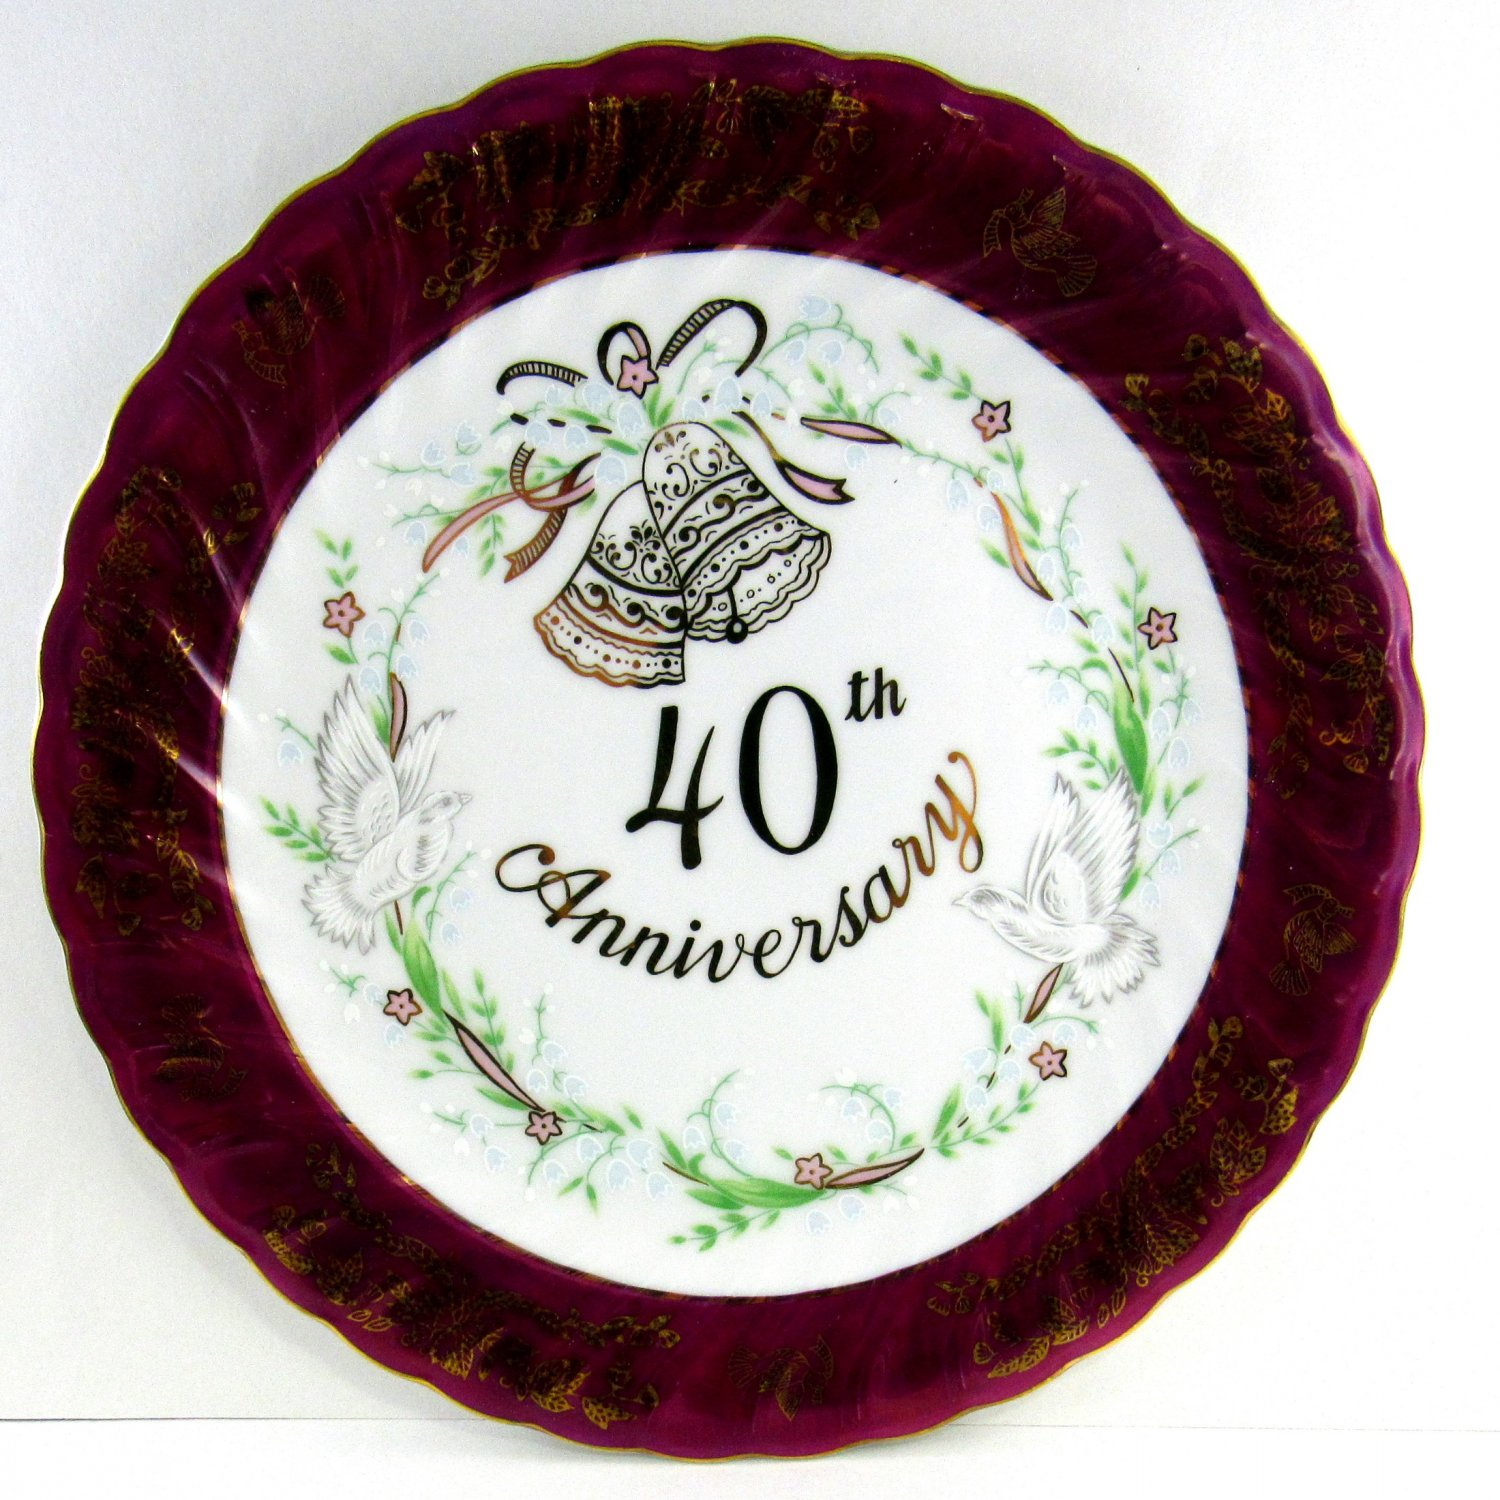 "Lefton China Plate 40th Anniversary 1983 MK 04706 Bells and Doves 10 1/4"" Maroon with Gold Trim"